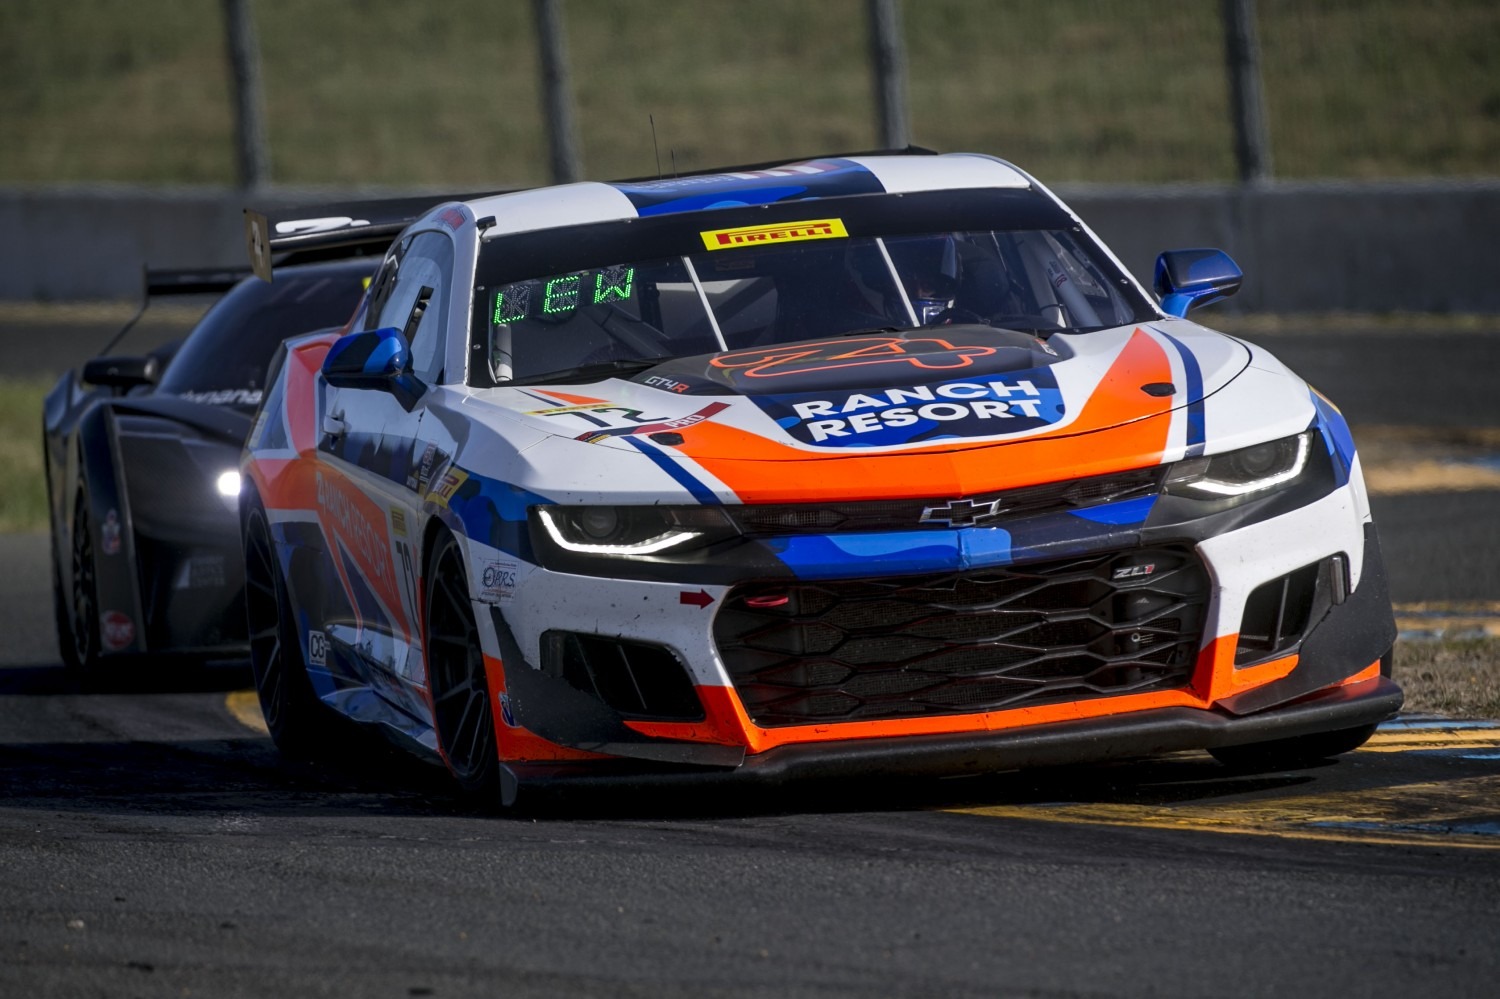 #72, Robinson Racing, Chevrolet Camaro GT4, Shane Lewis, 74 Ranch Resort, SRO at Sonoma Raceway, Sonoma CA  | Brian Cleary/SRO